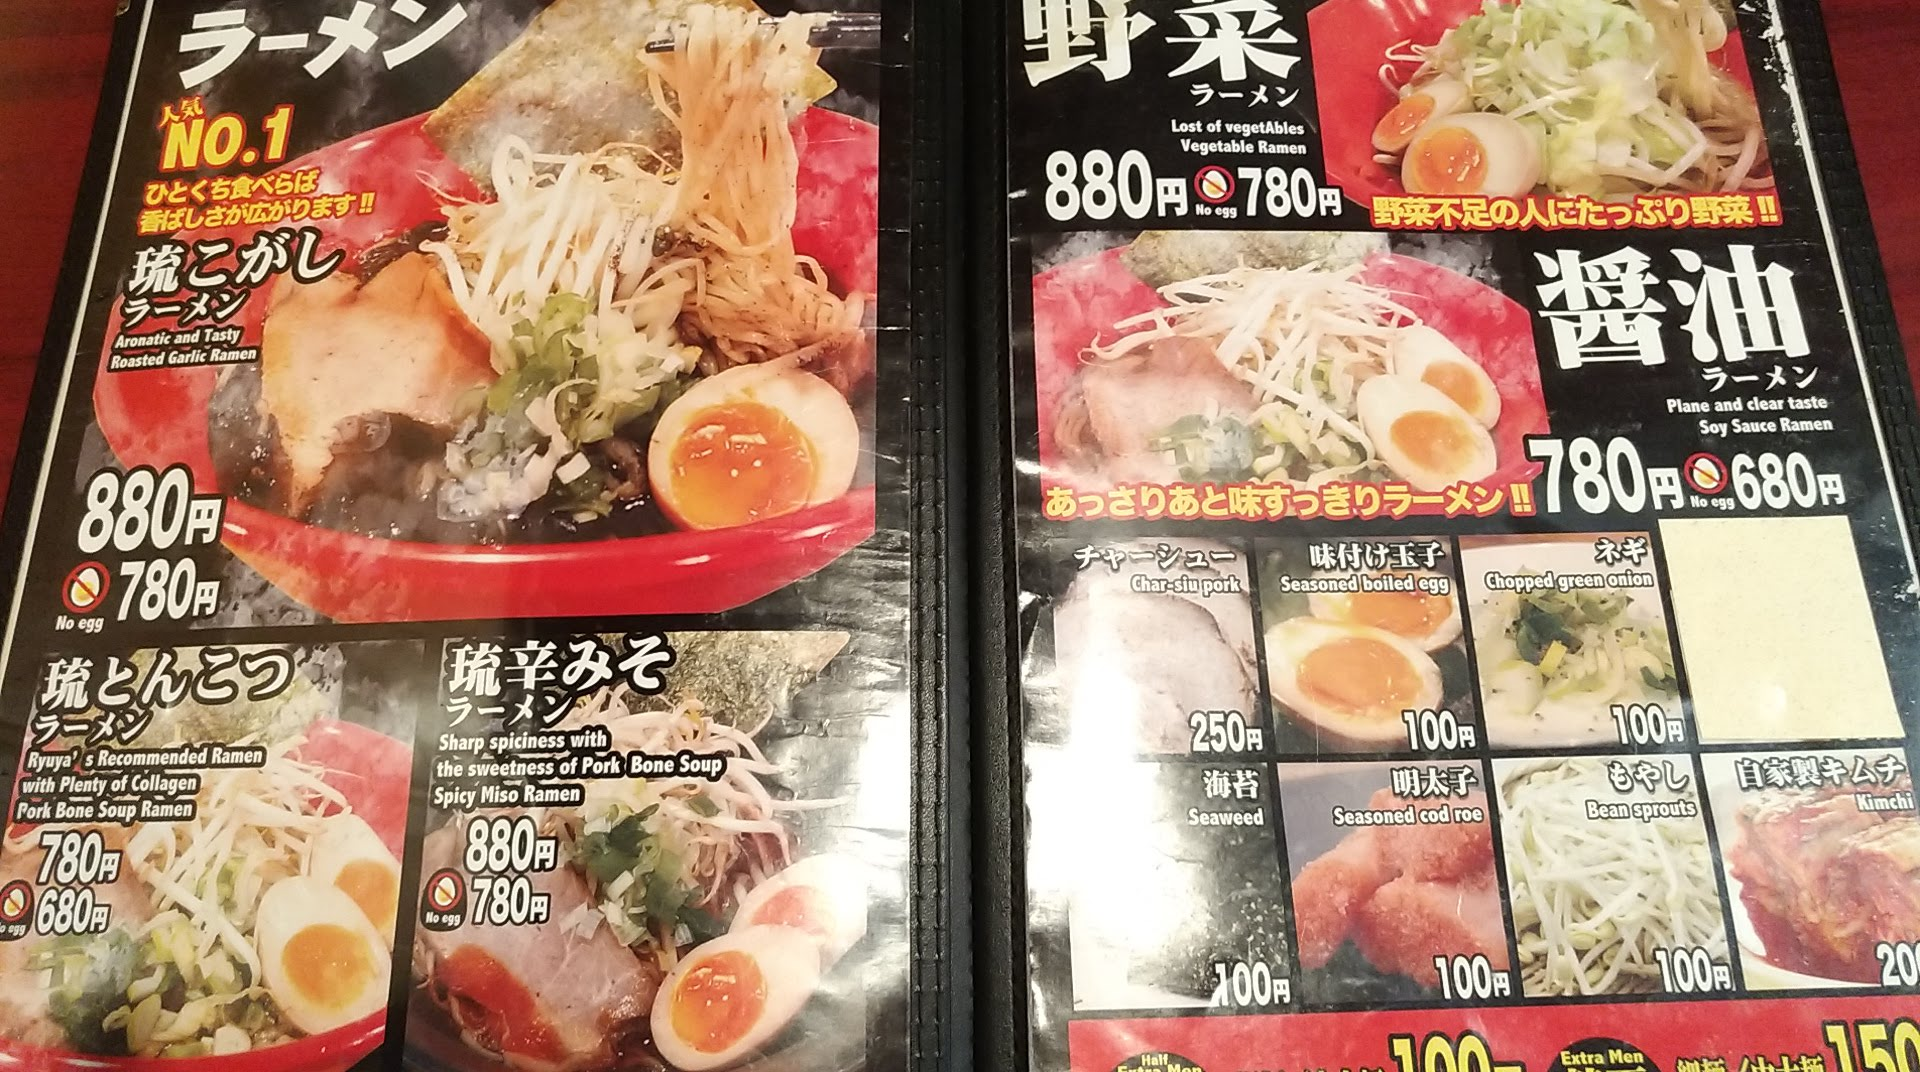 the menu of the Ryuuya 1